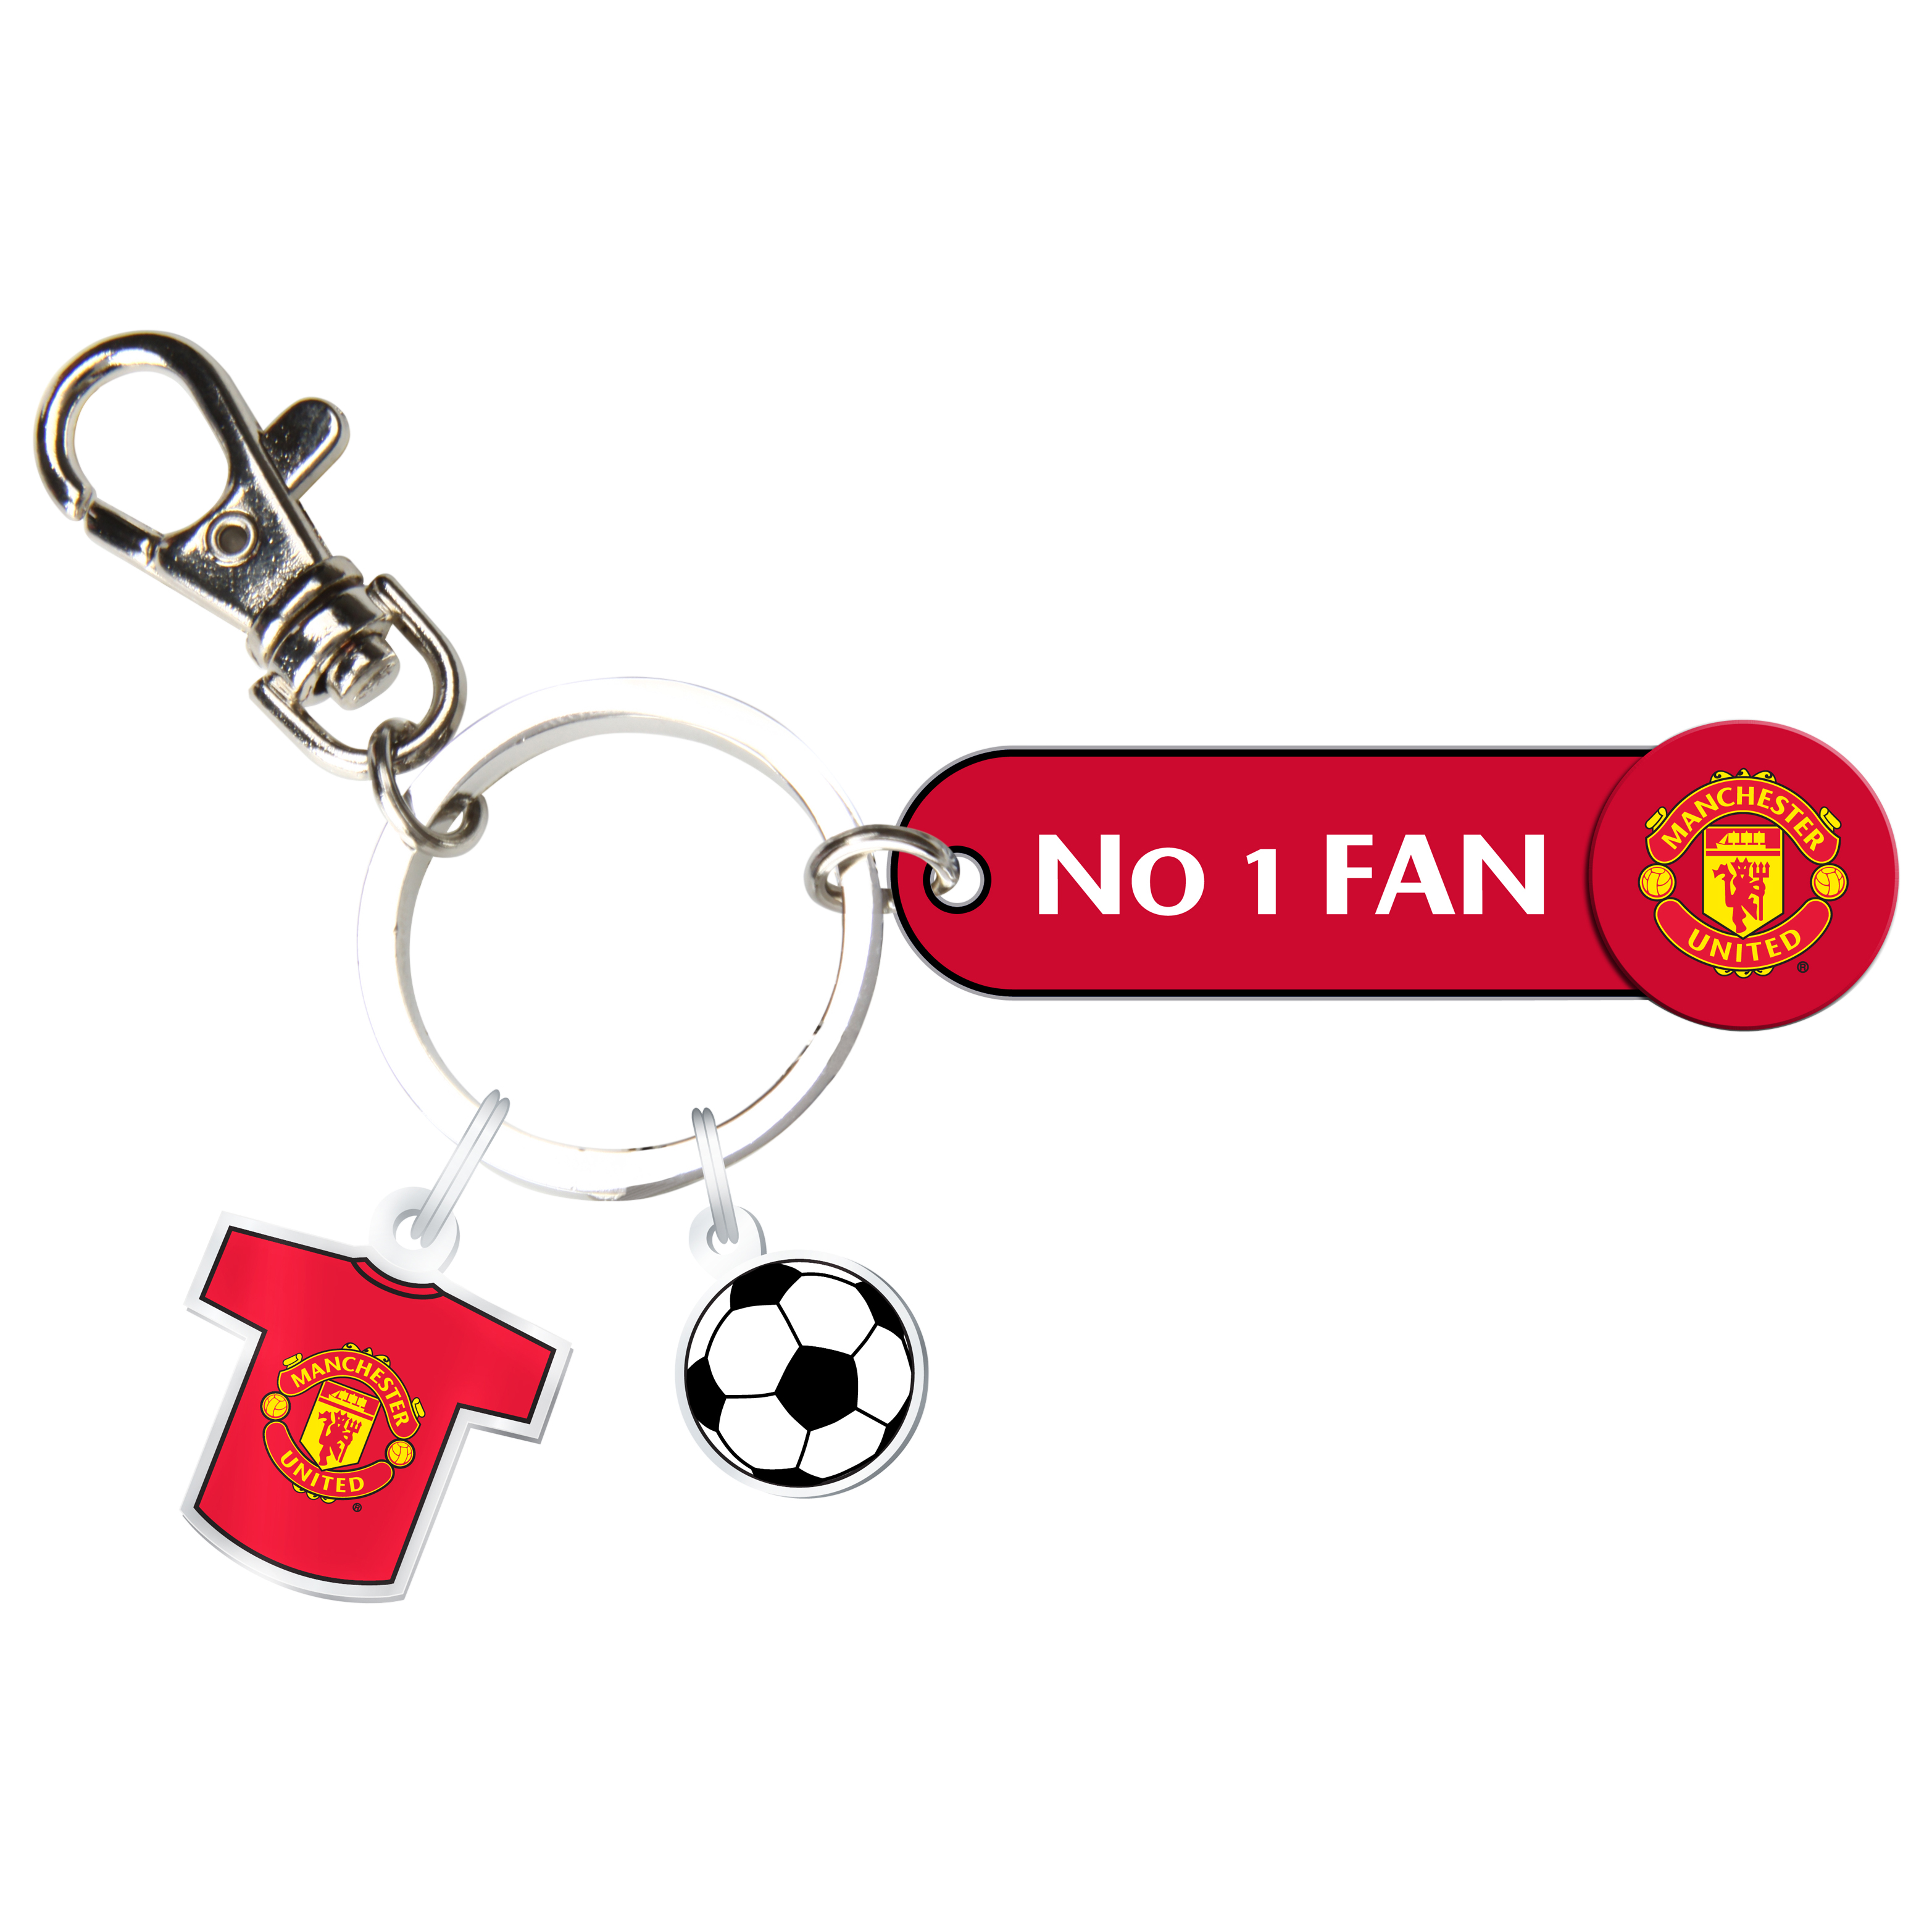 Manchester United No 1 Fan Bag Charm